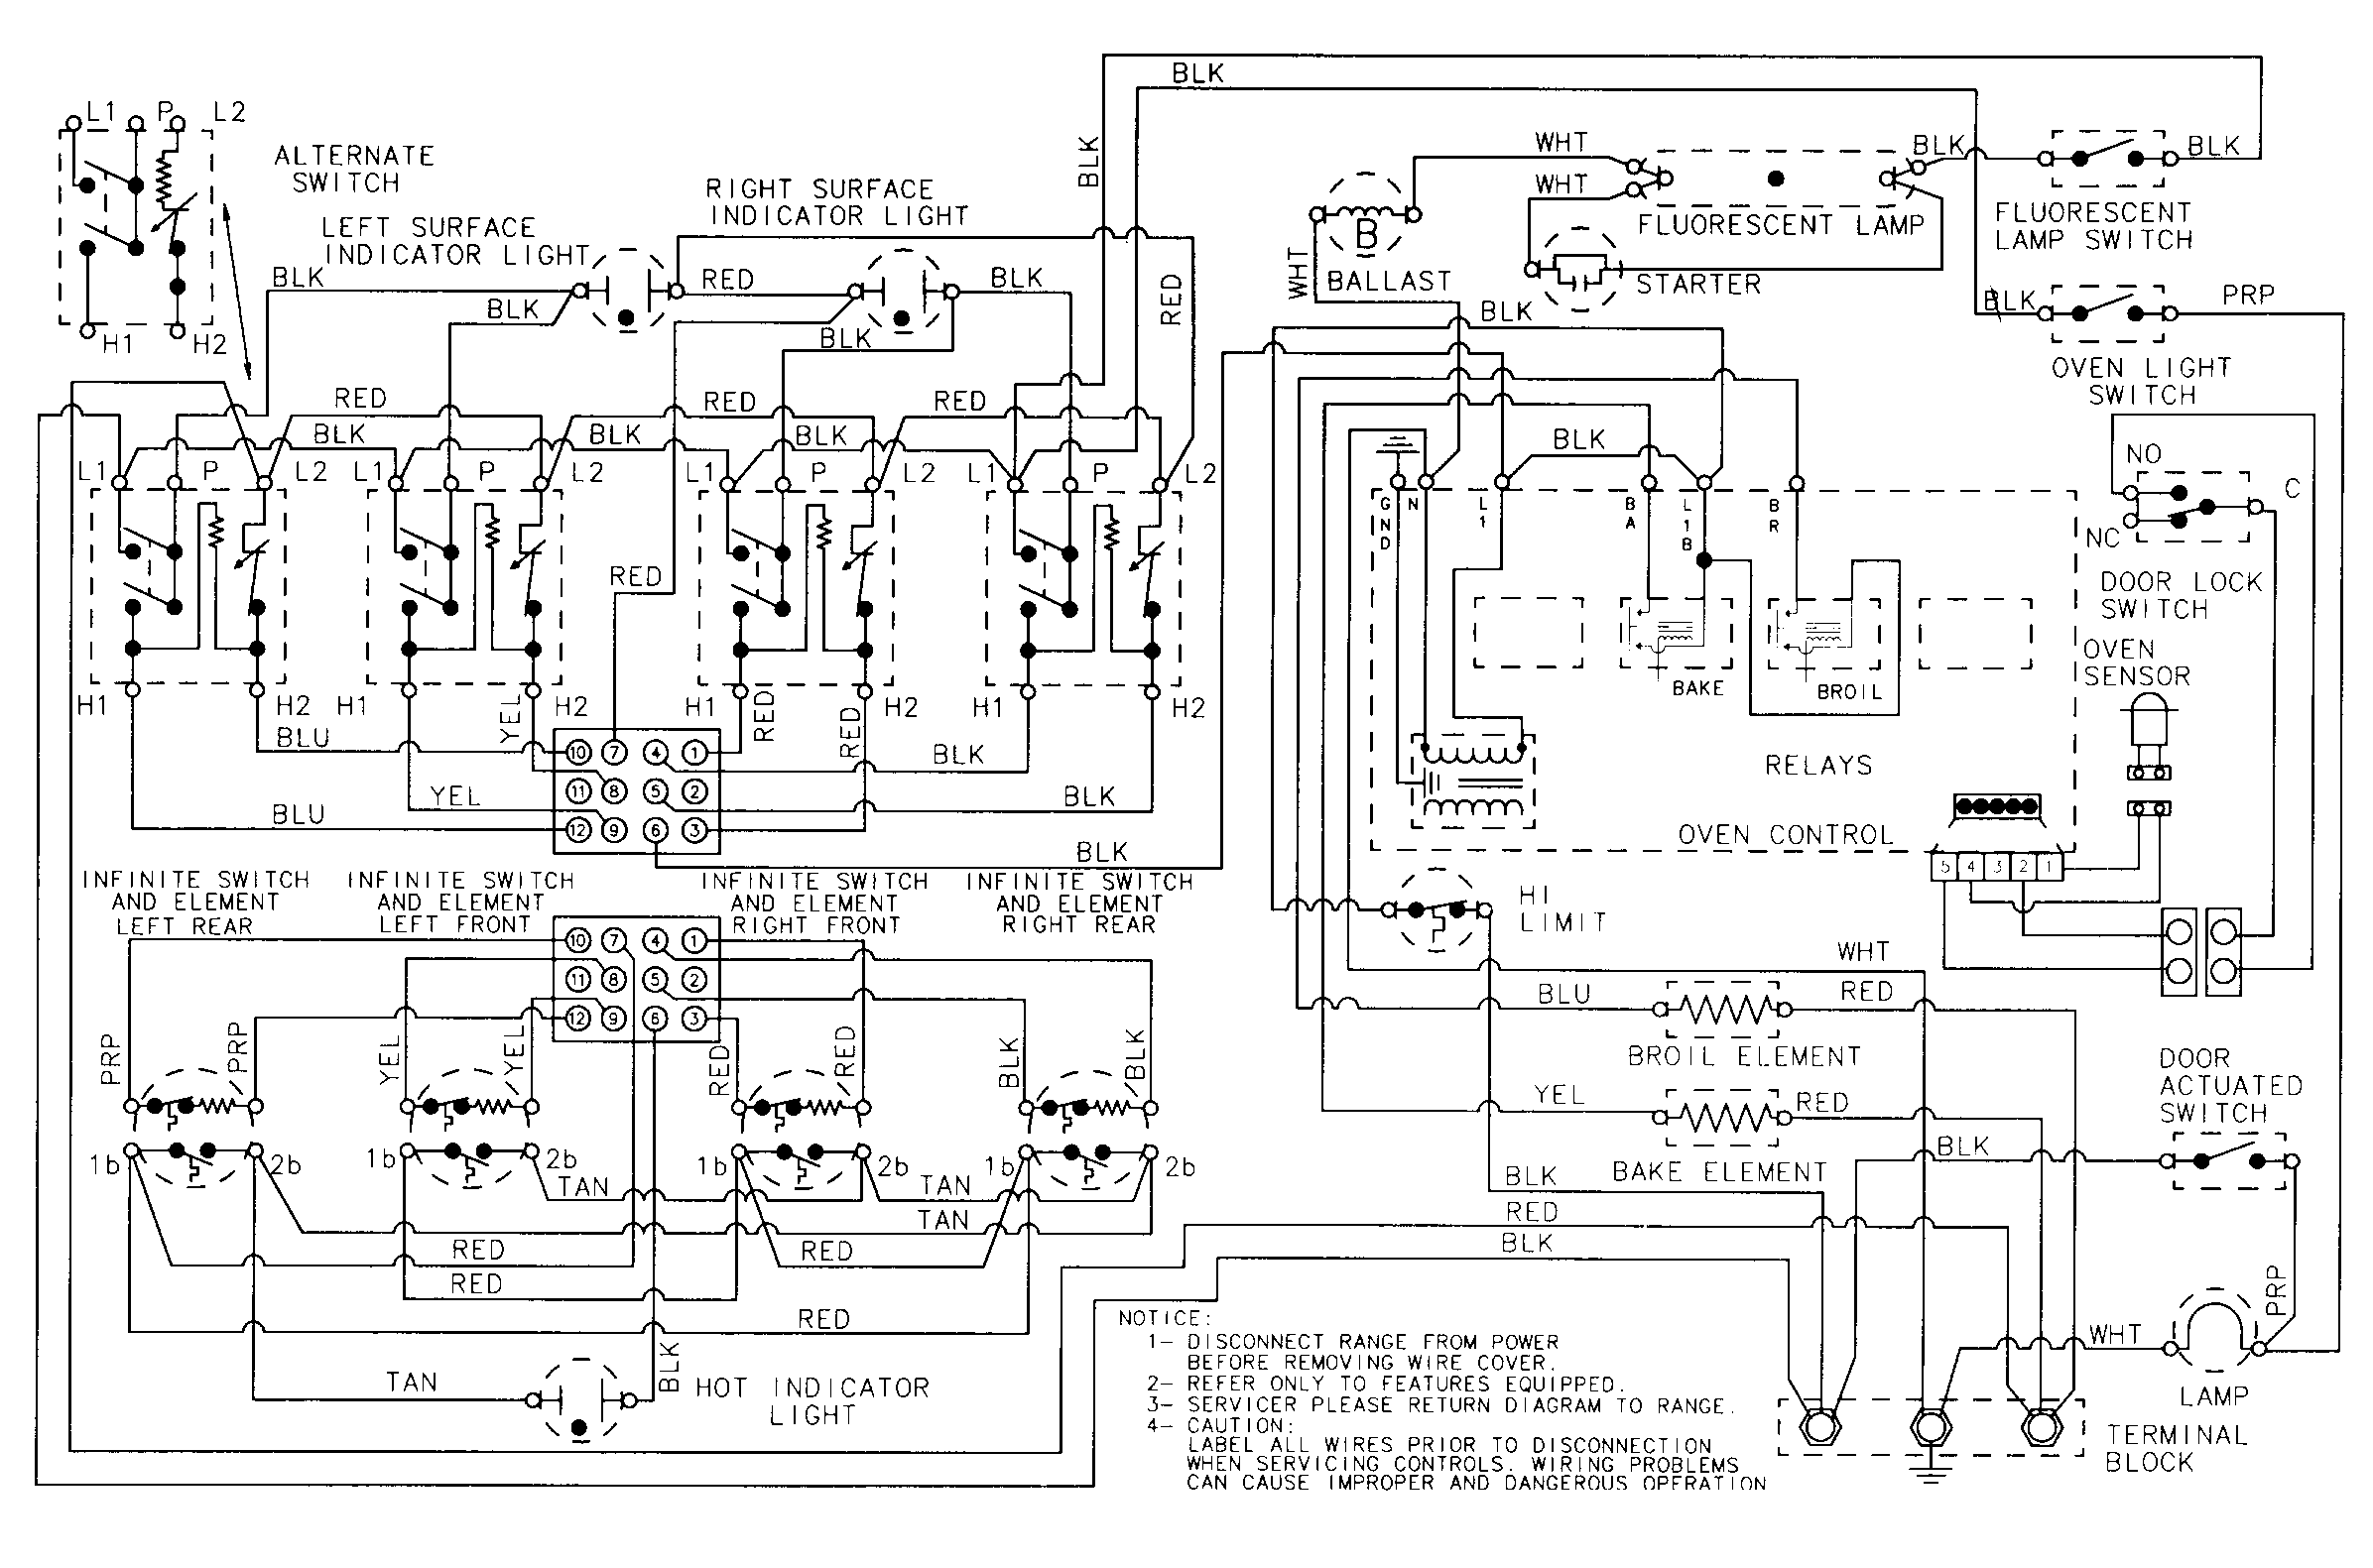 whirlpool grill wiring diagram wire data u2022 rh coller site Whirlpool Dishwasher Parts Whirlpool Dishwasher Service Manual